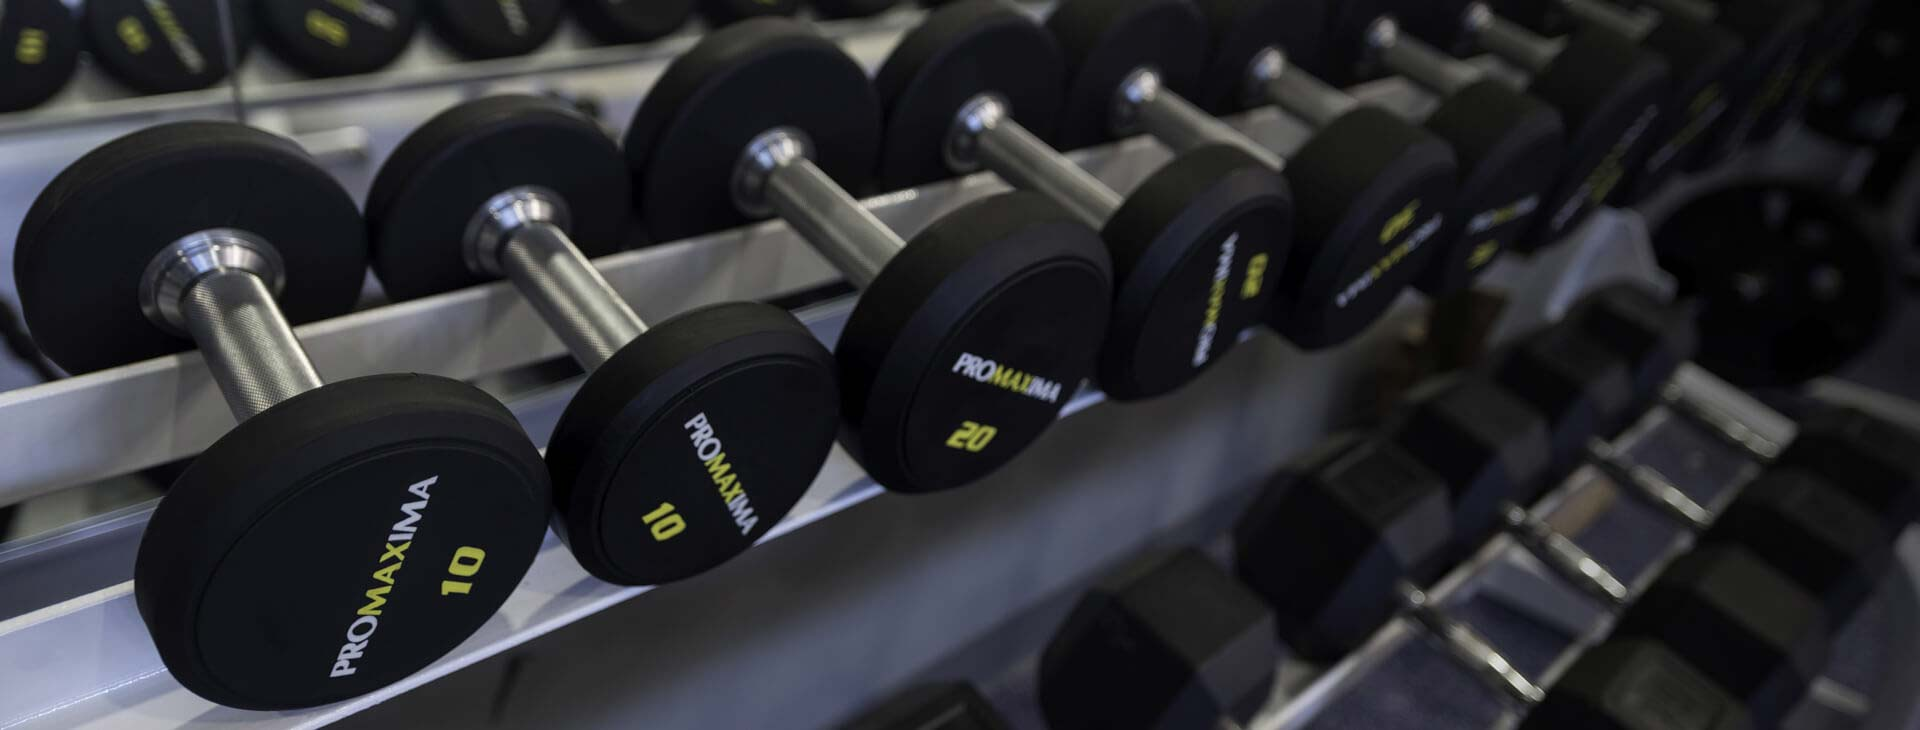 Gyms that optimize performance